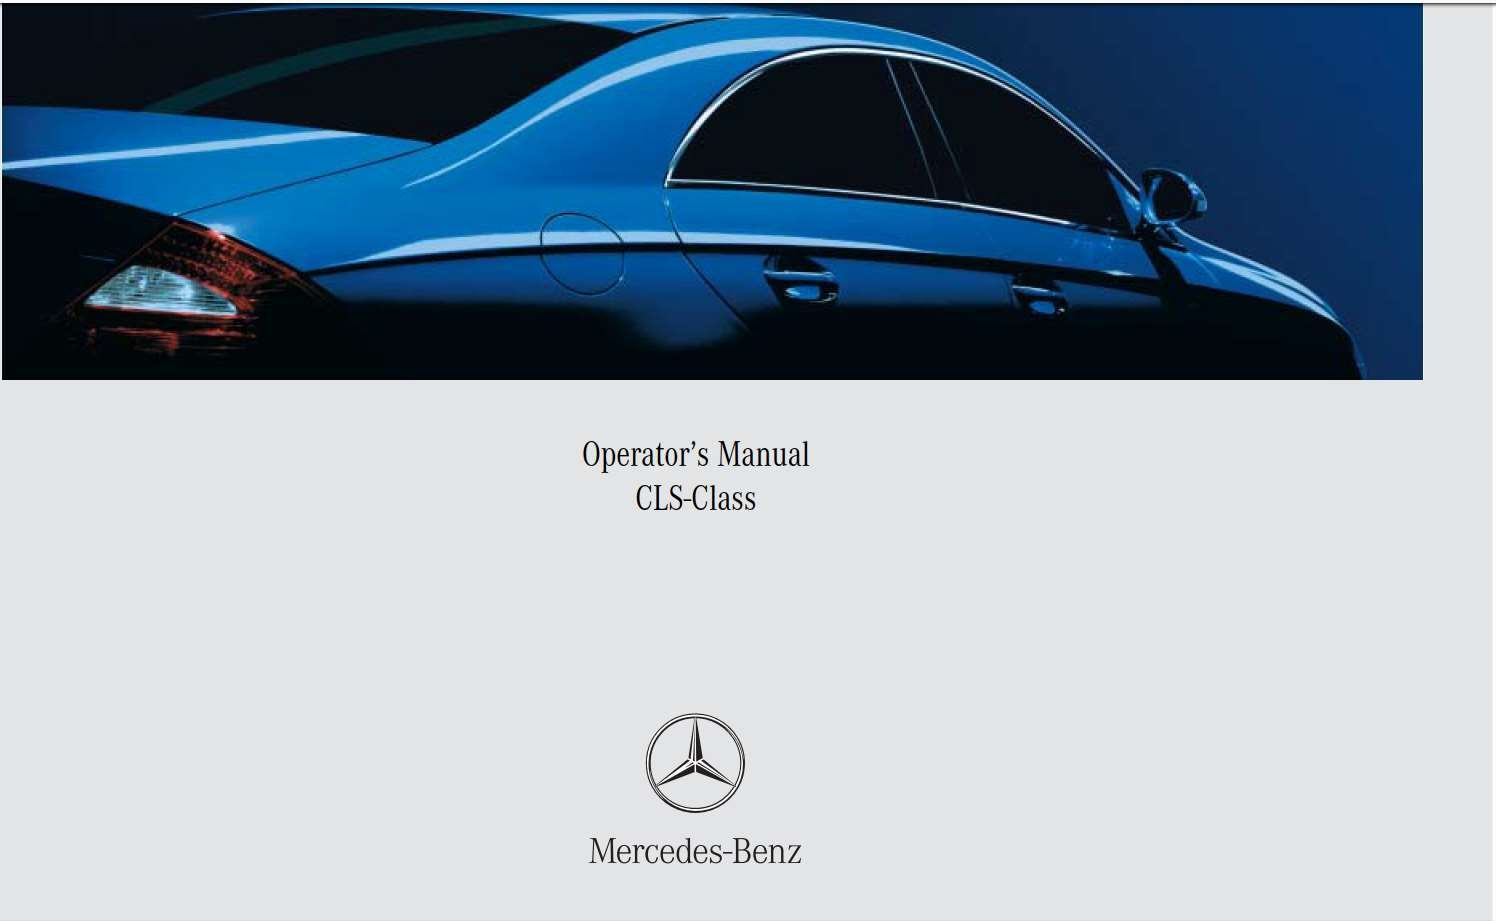 Mercedes Benz Cls Class 2007 Owner S Manual Has Been Published On Procarmanuals Com Https Procarmanuals Com Mercedes Mercedes Mercedes Benz Mercedes Benz Cls